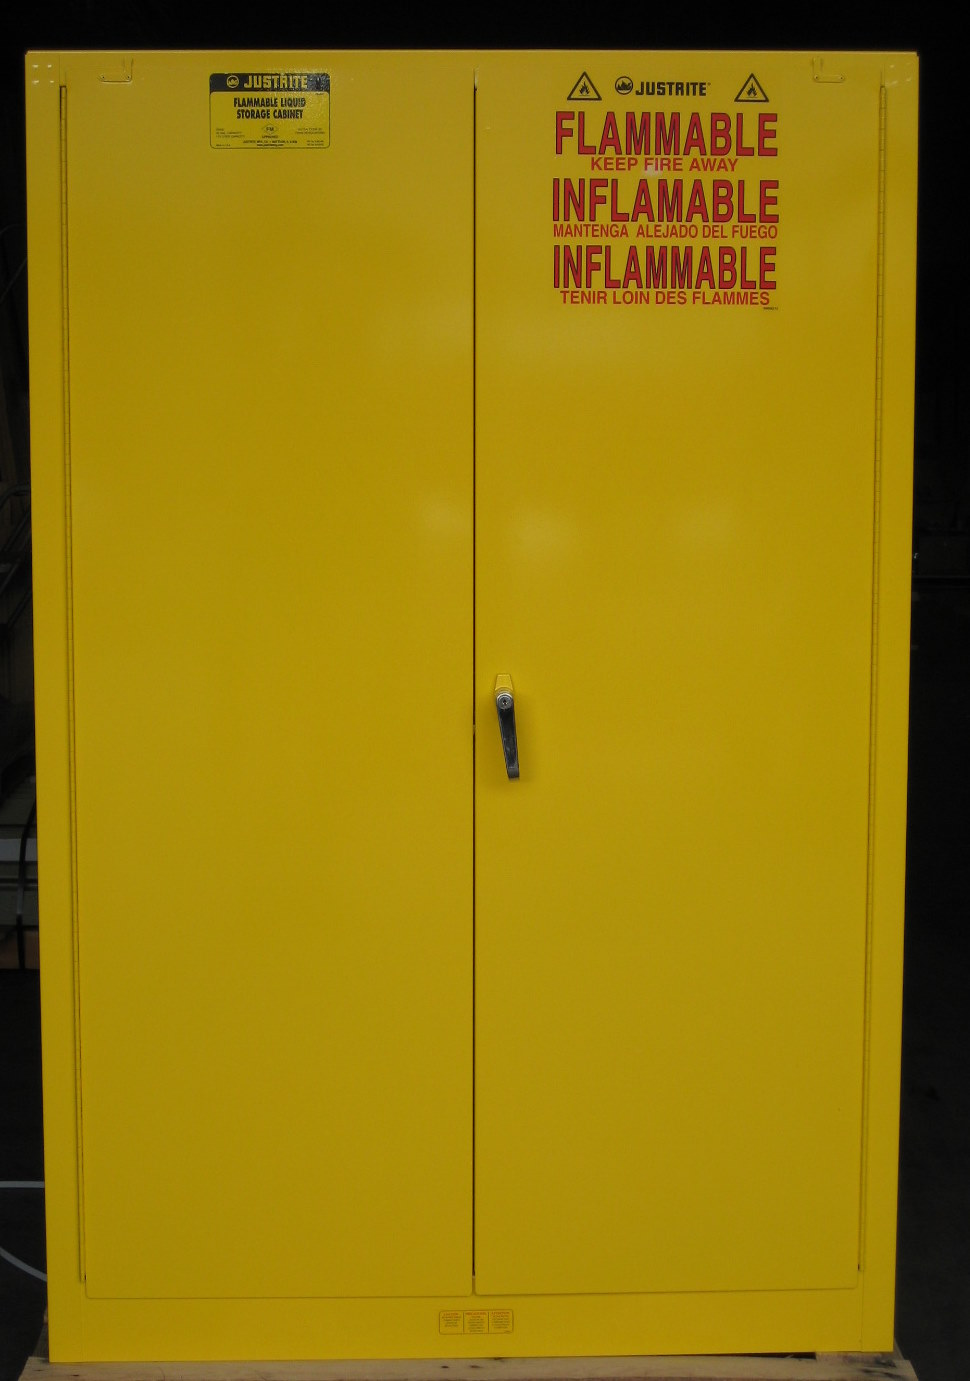 Flammable Storage Cabinetsimage 1